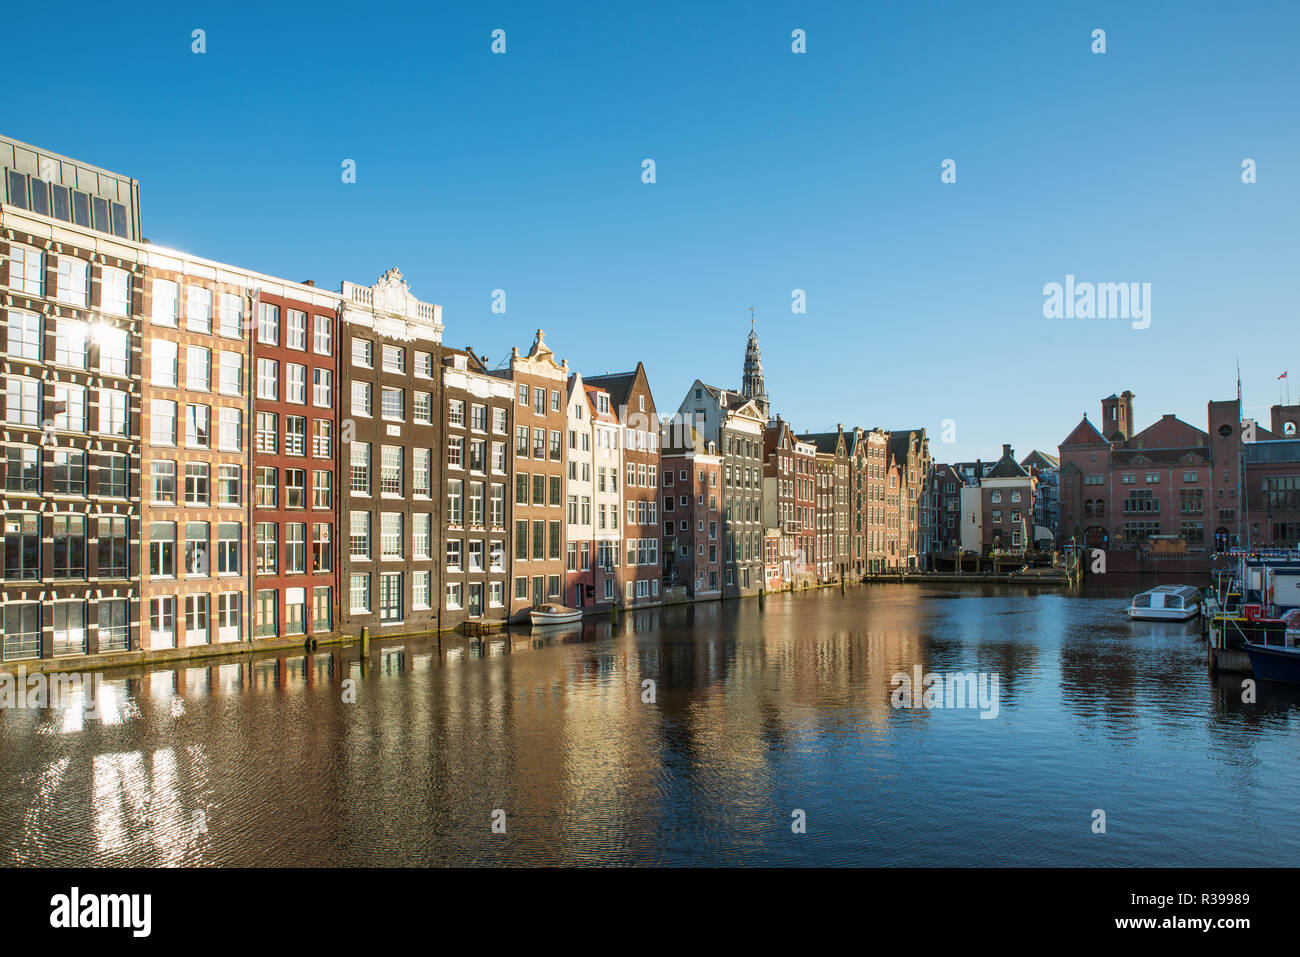 Amsterdam city view of Netherlands traditional houses with Amstel river in Amsterdam, Netherlands - Stock Image